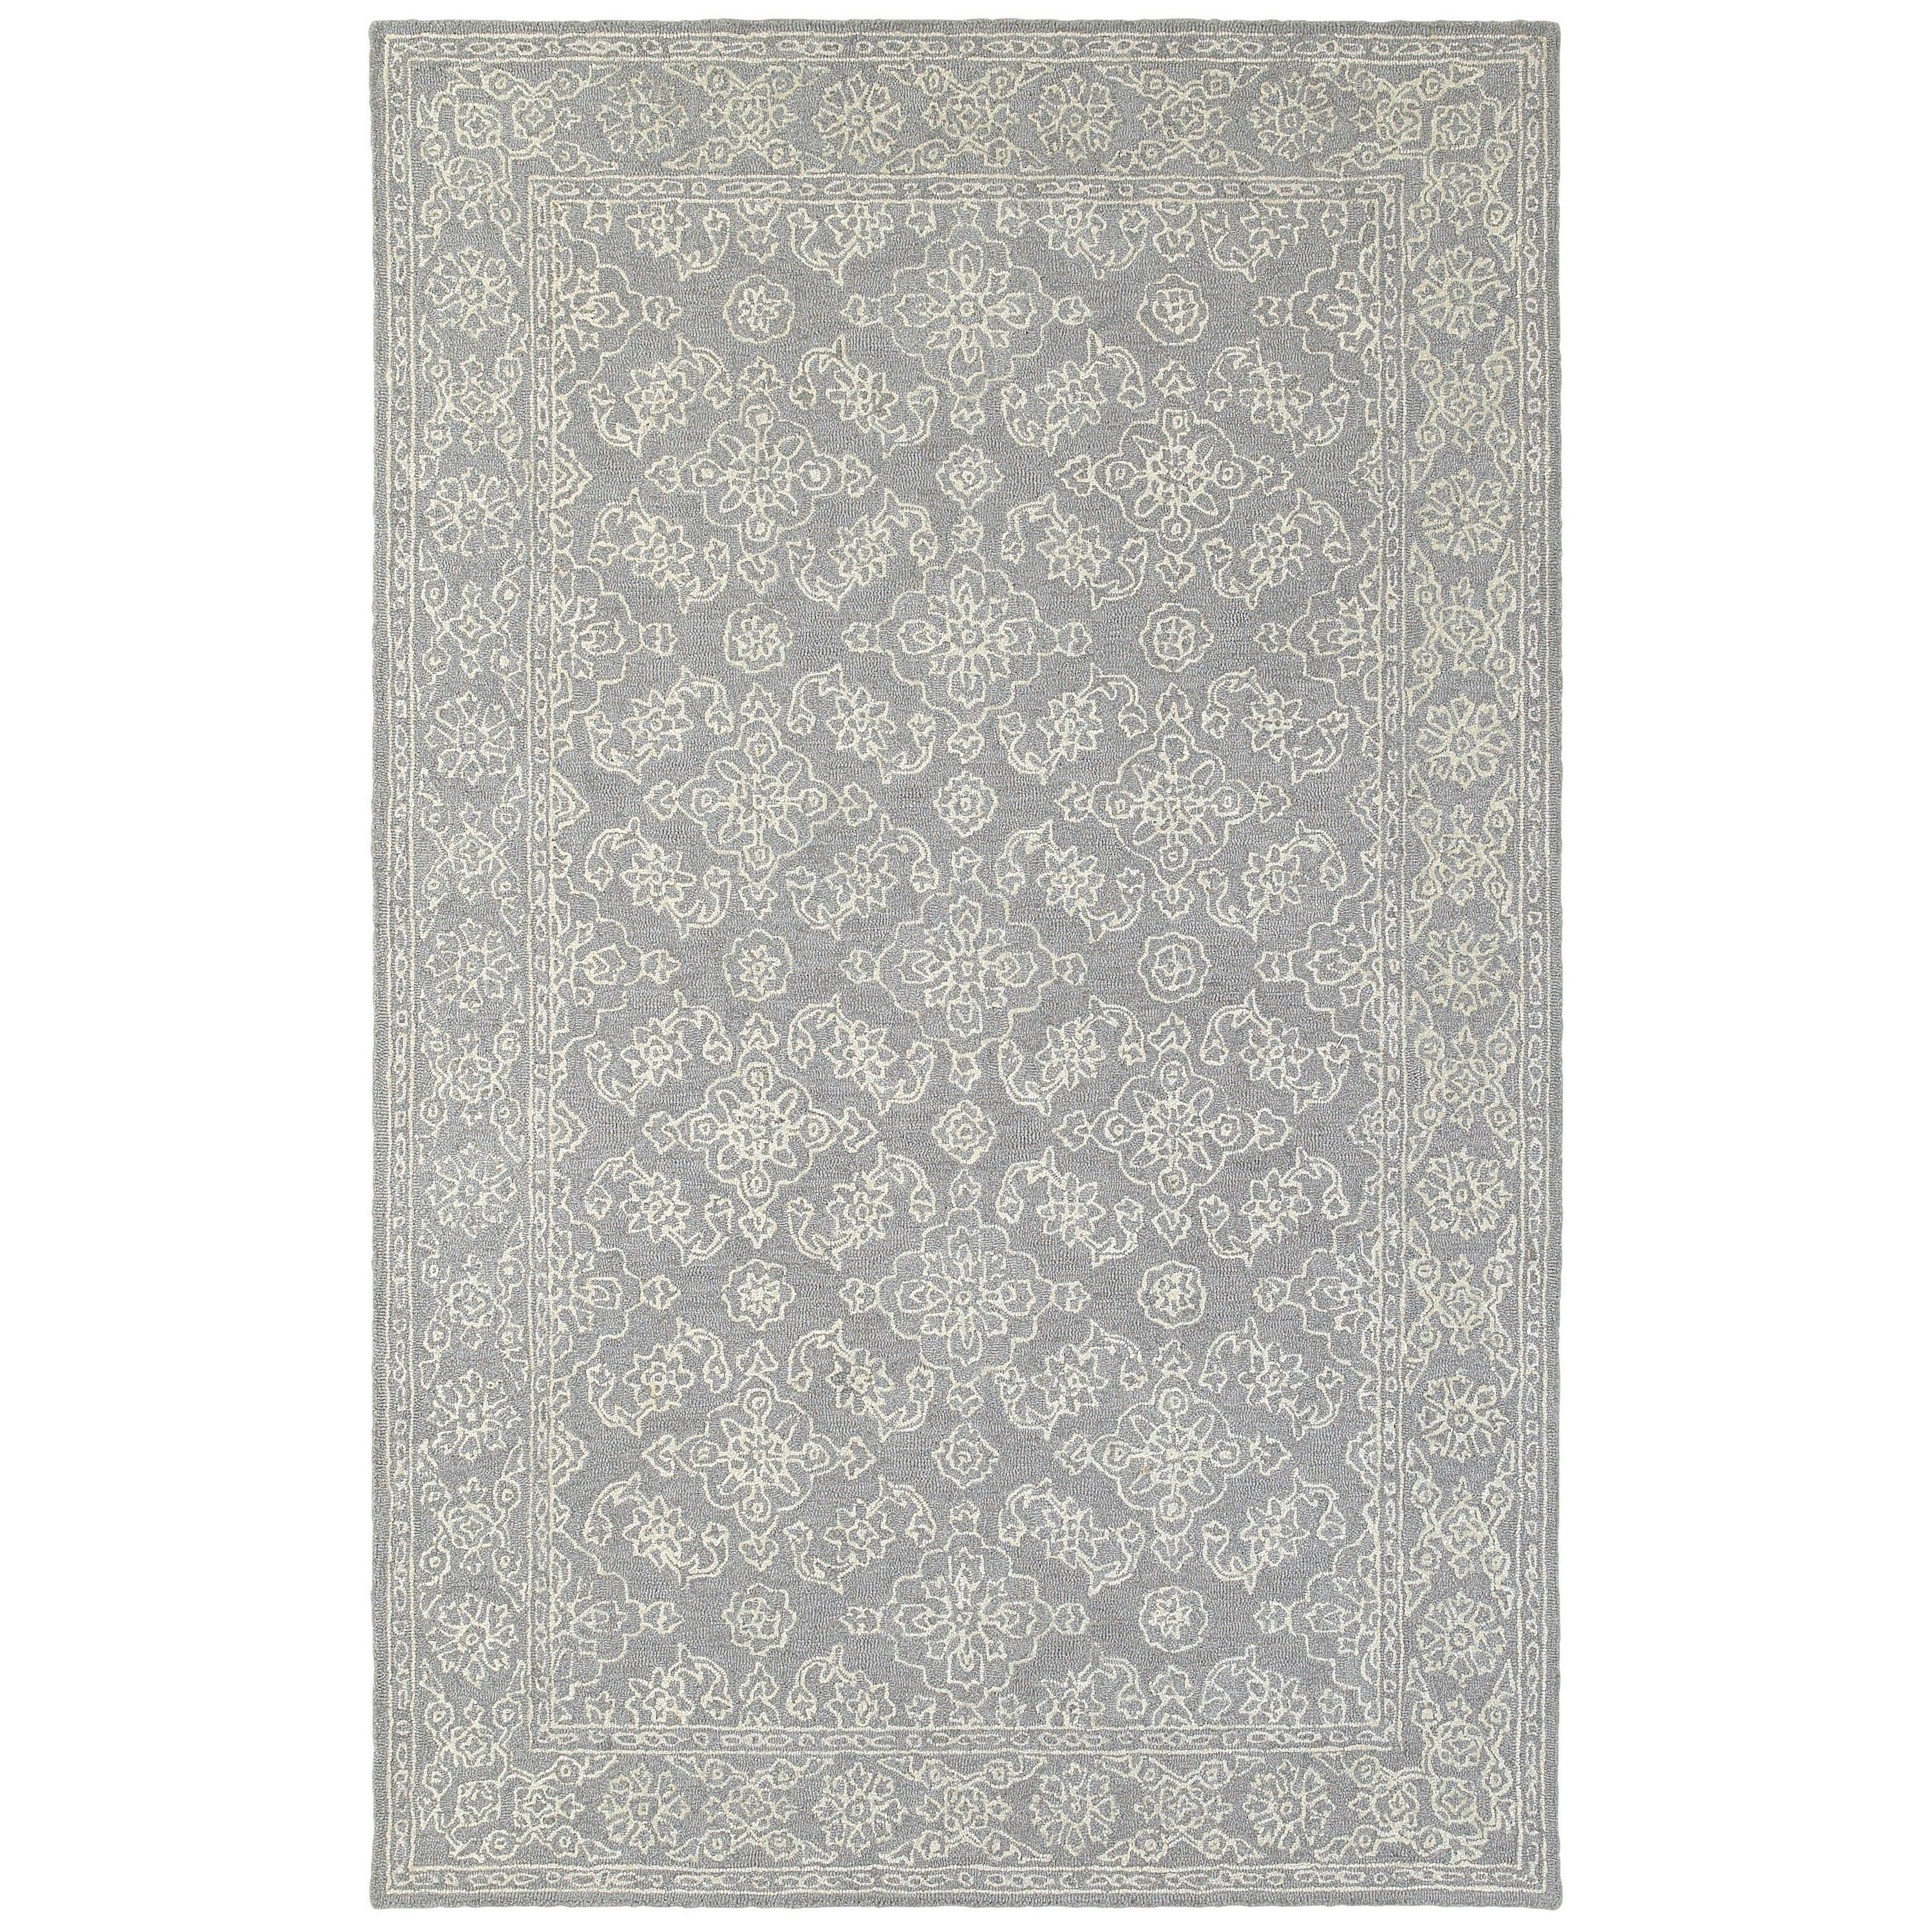 Beige Blue Grey Ivory Off White Wool 10 X 12 13 14 9 7x9 10x14 Rugs Use Large Area To Bring A New Mood An Old Room Or